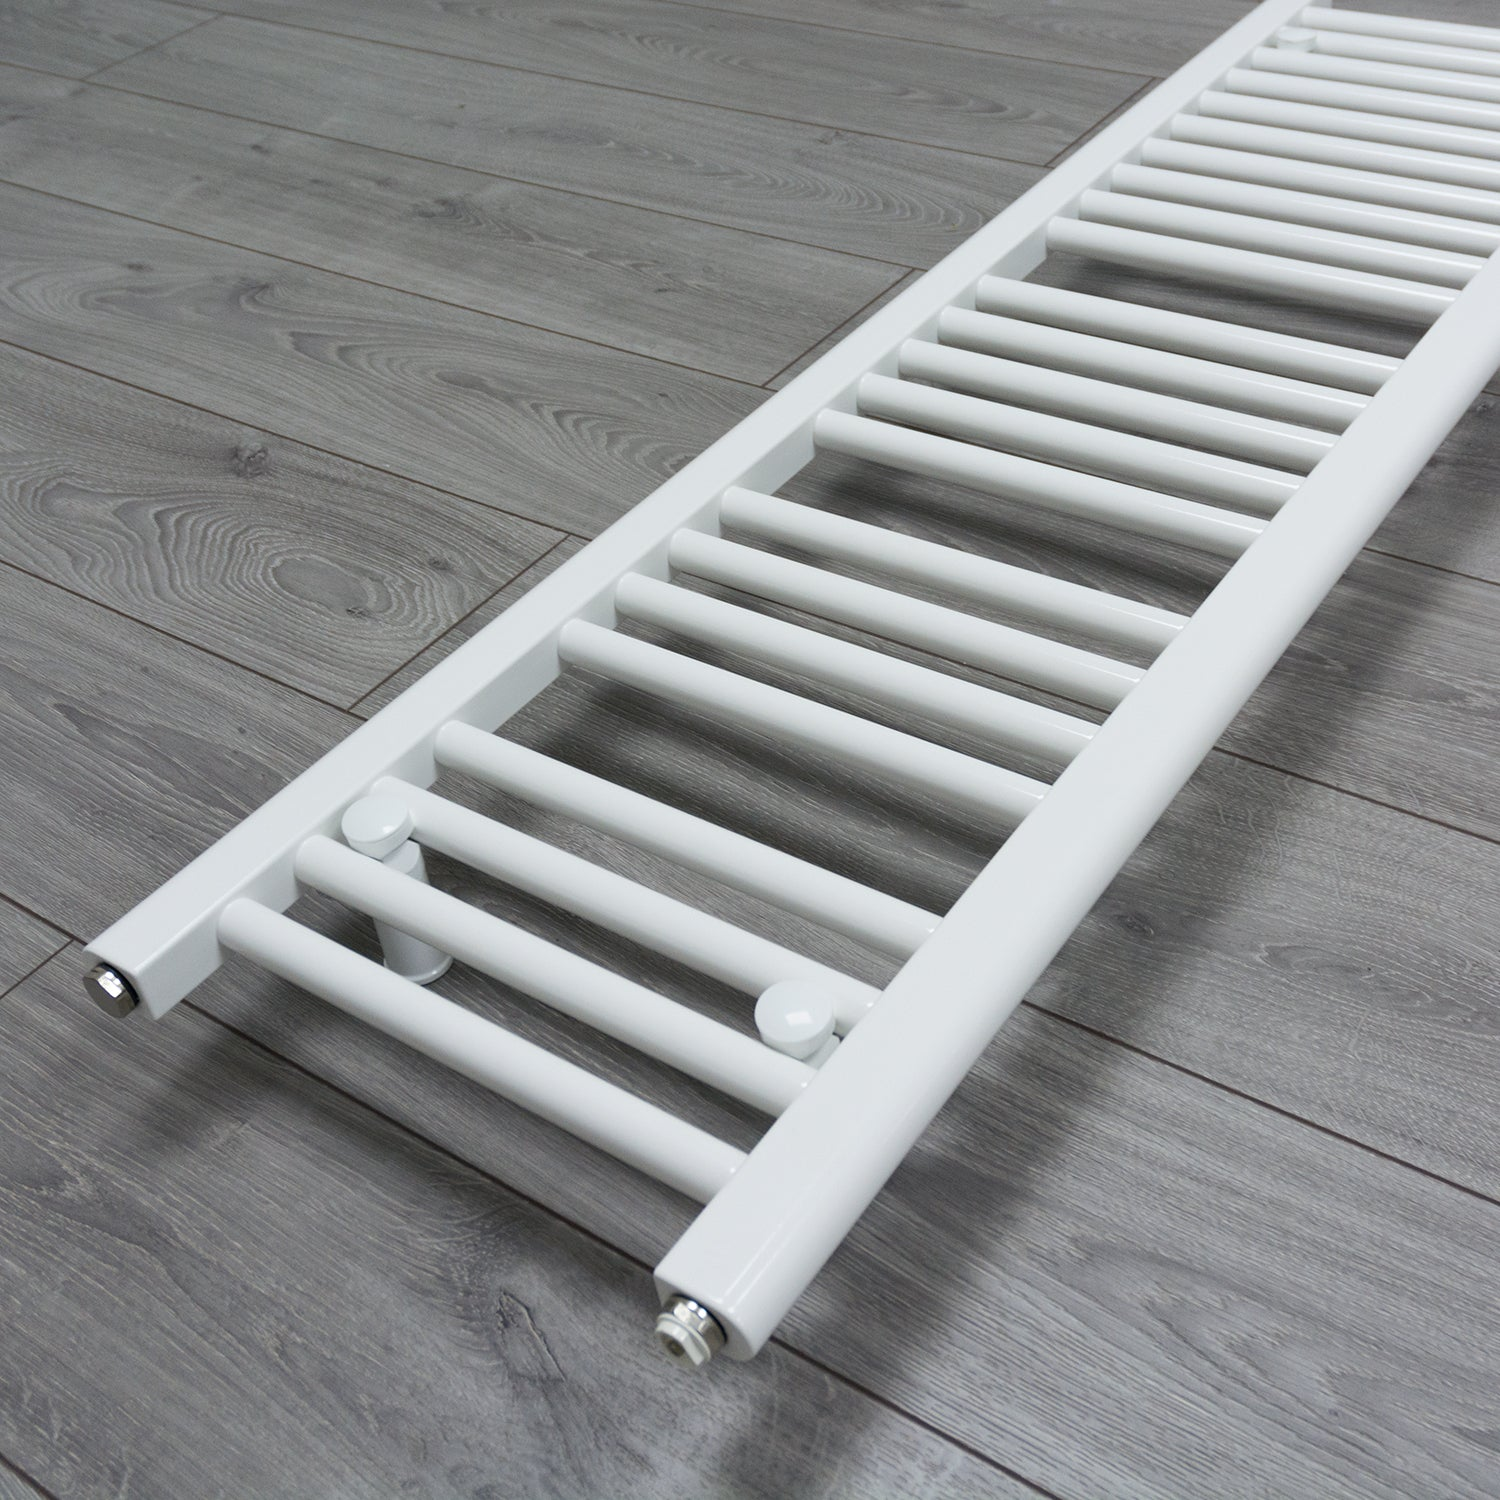 350mm x 1200mm White Heated Towel Rail Radiator Close Up Image